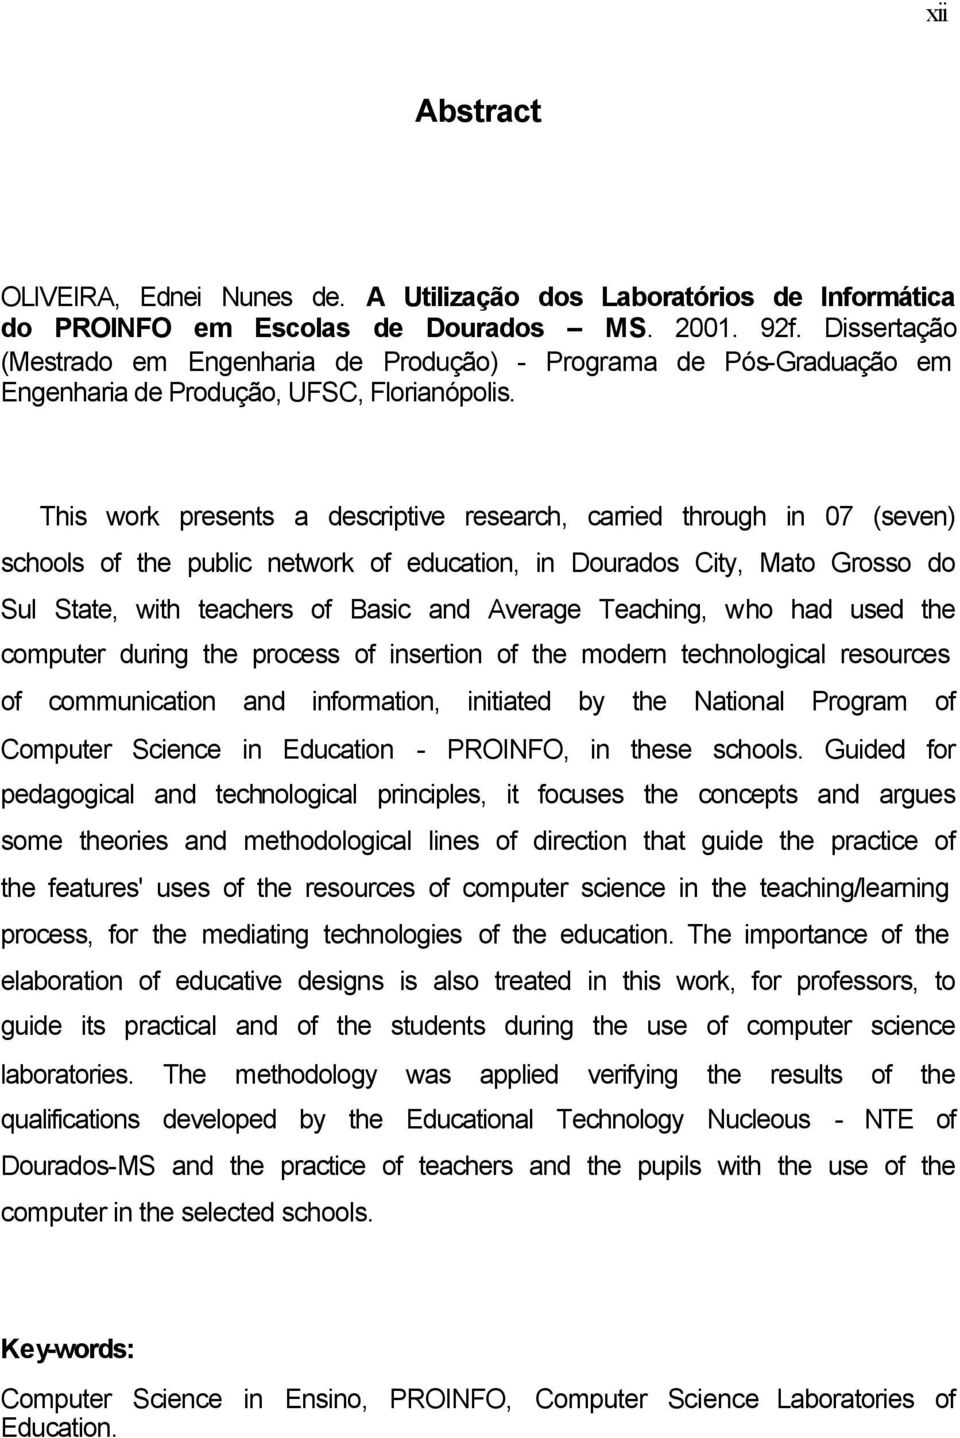 This work presents a descriptive research, carried through in 07 (seven) schools of the public network of education, in Dourados City, Mato Grosso do Sul State, with teachers of Basic and Average